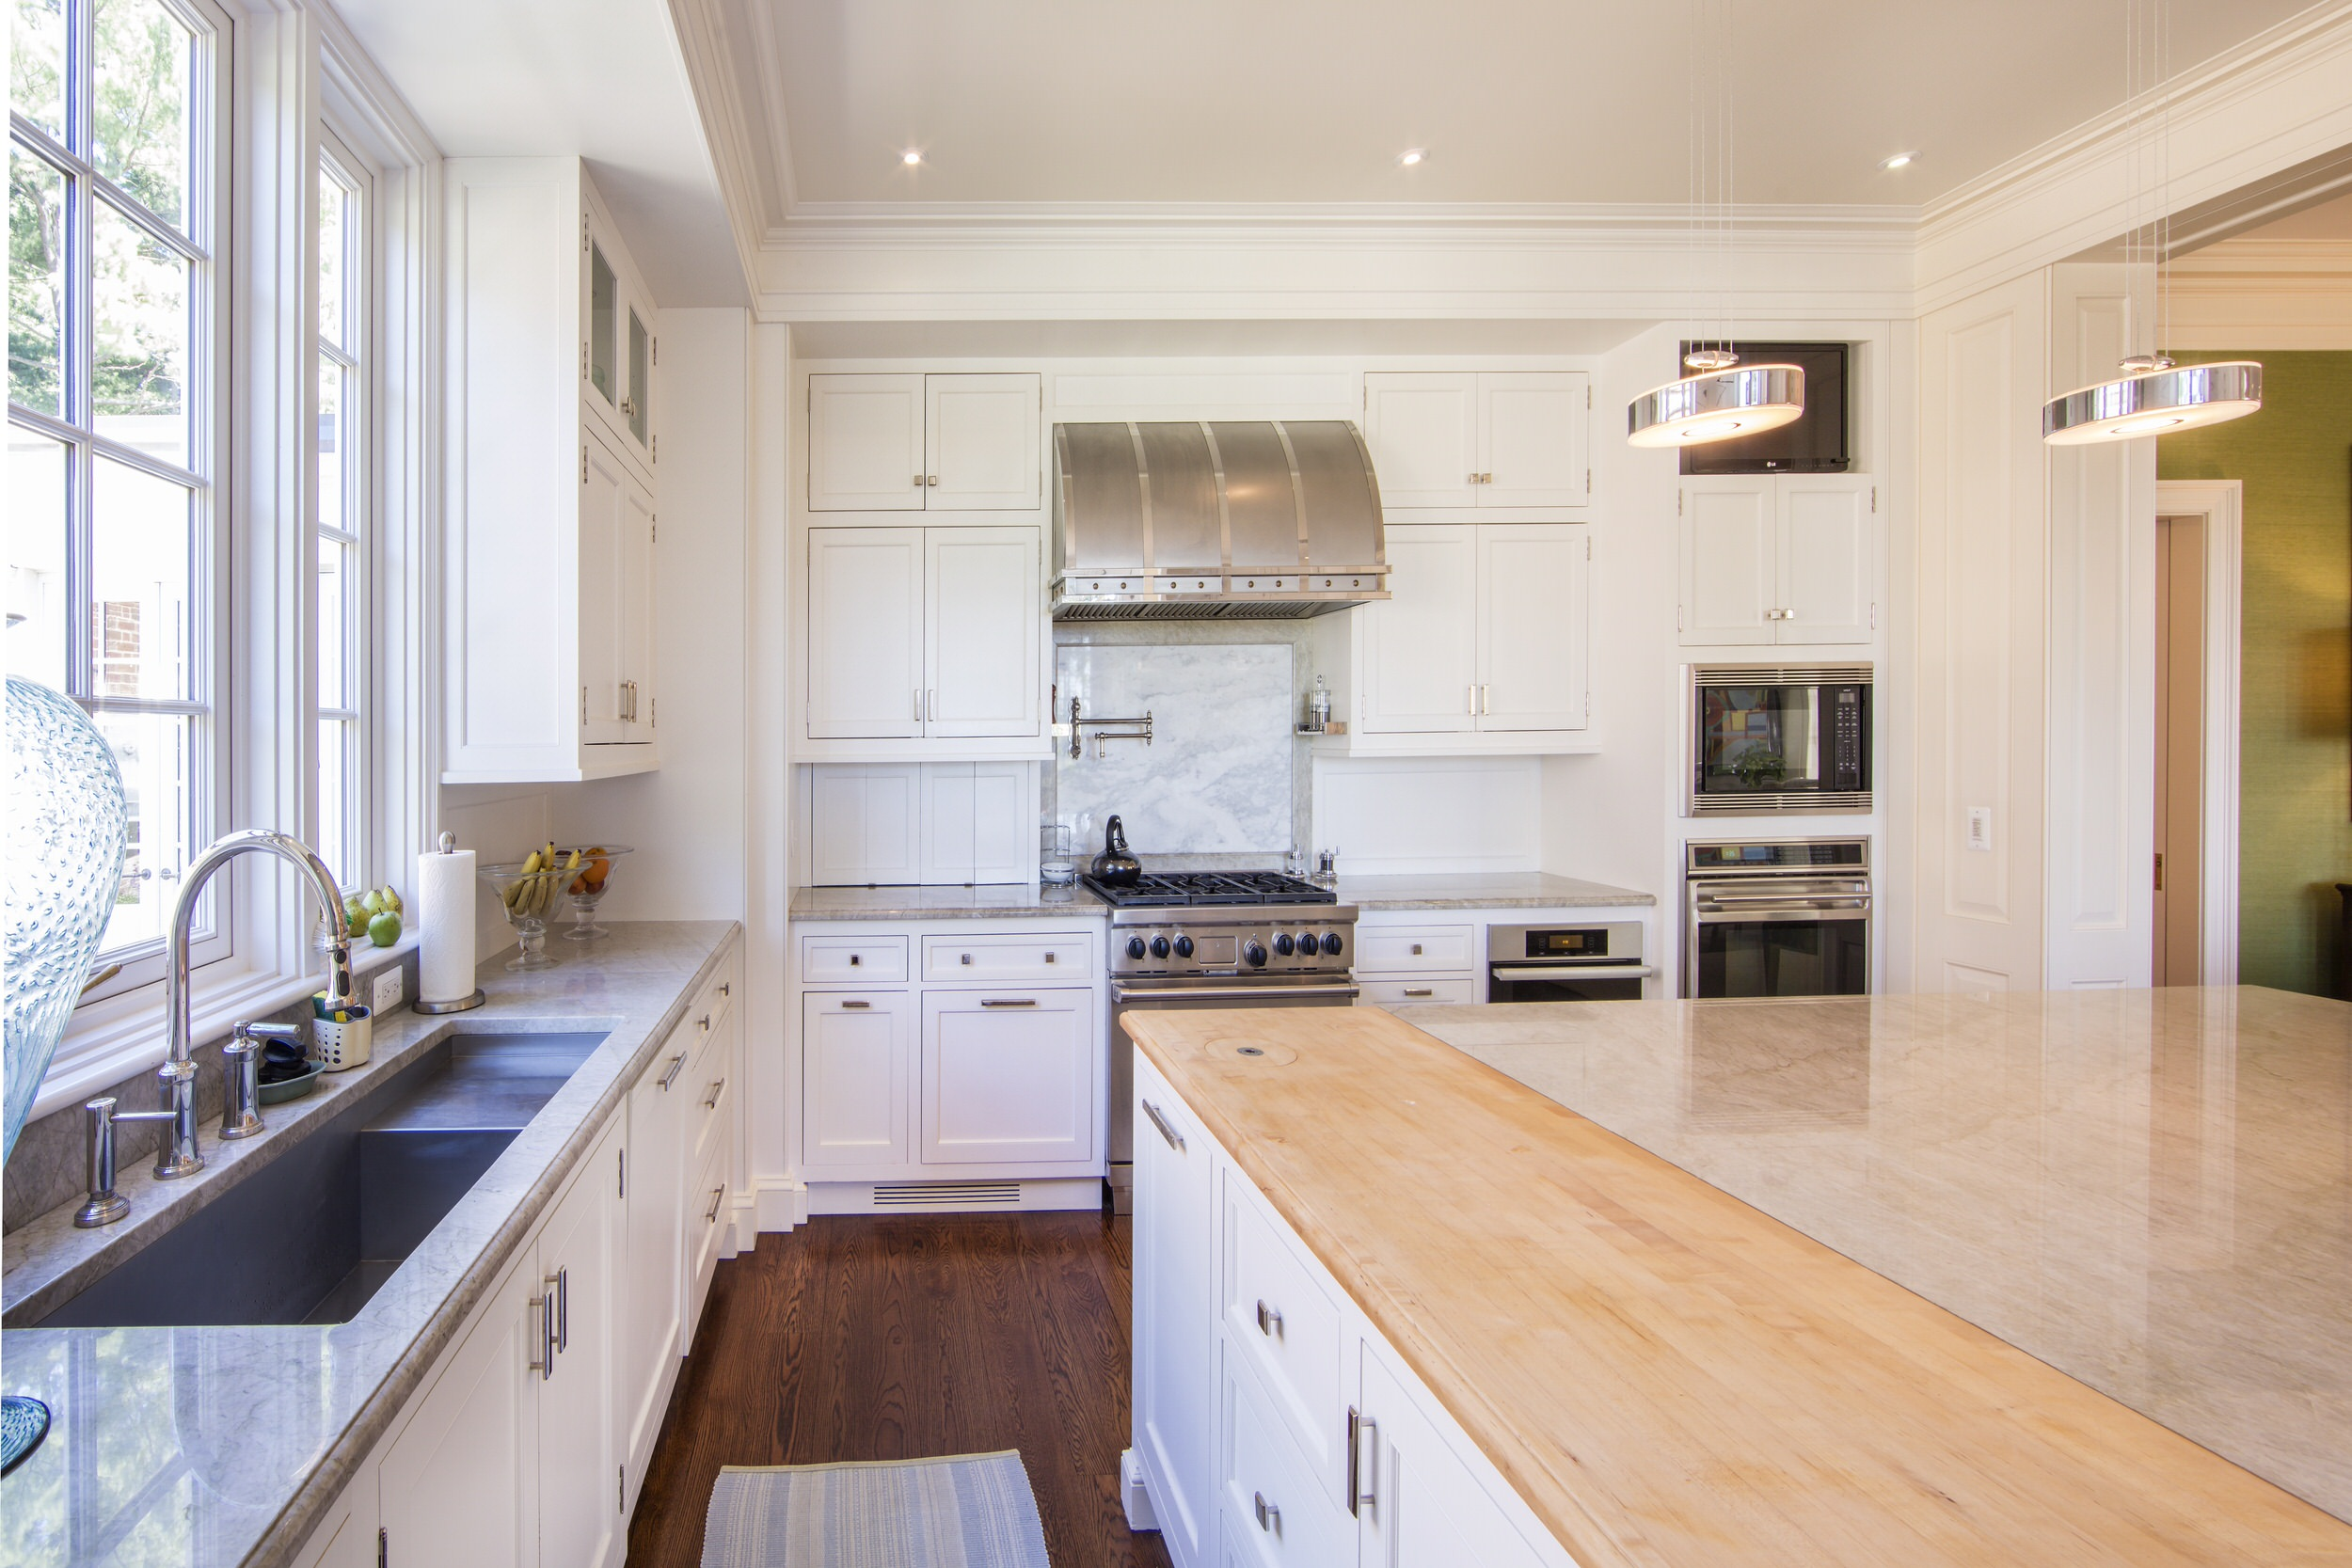 Kitchen, millwork and combination of materials for the island countertop - designed for Hamady Architects